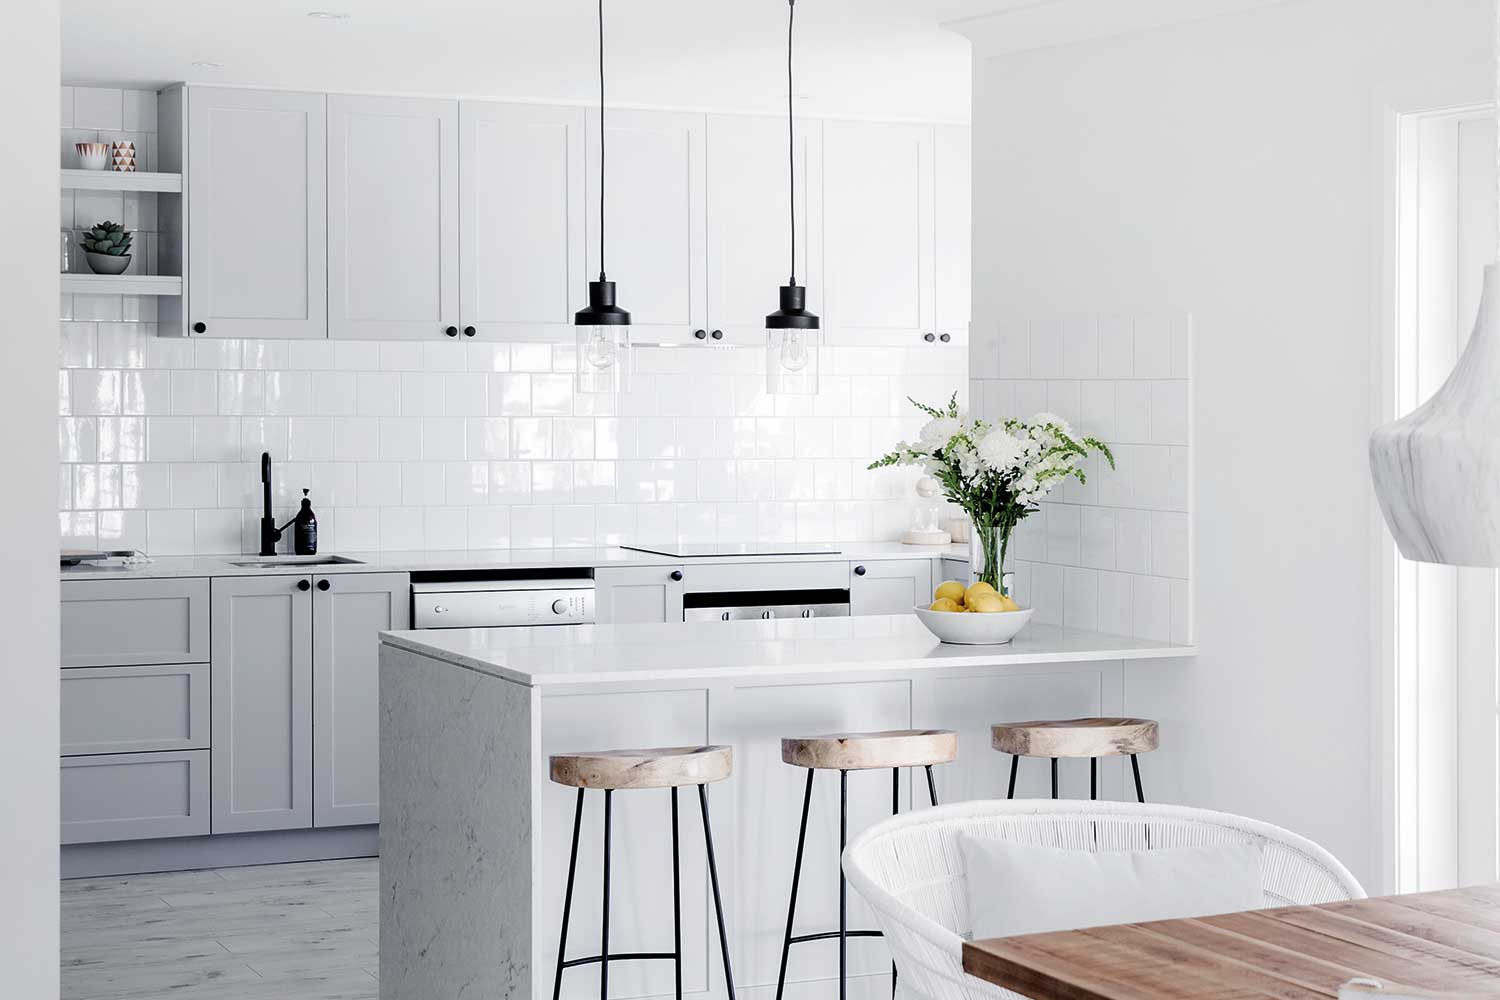 Get The Hamptons Look In Your Kitchen | Home Beautiful Magazine Australia